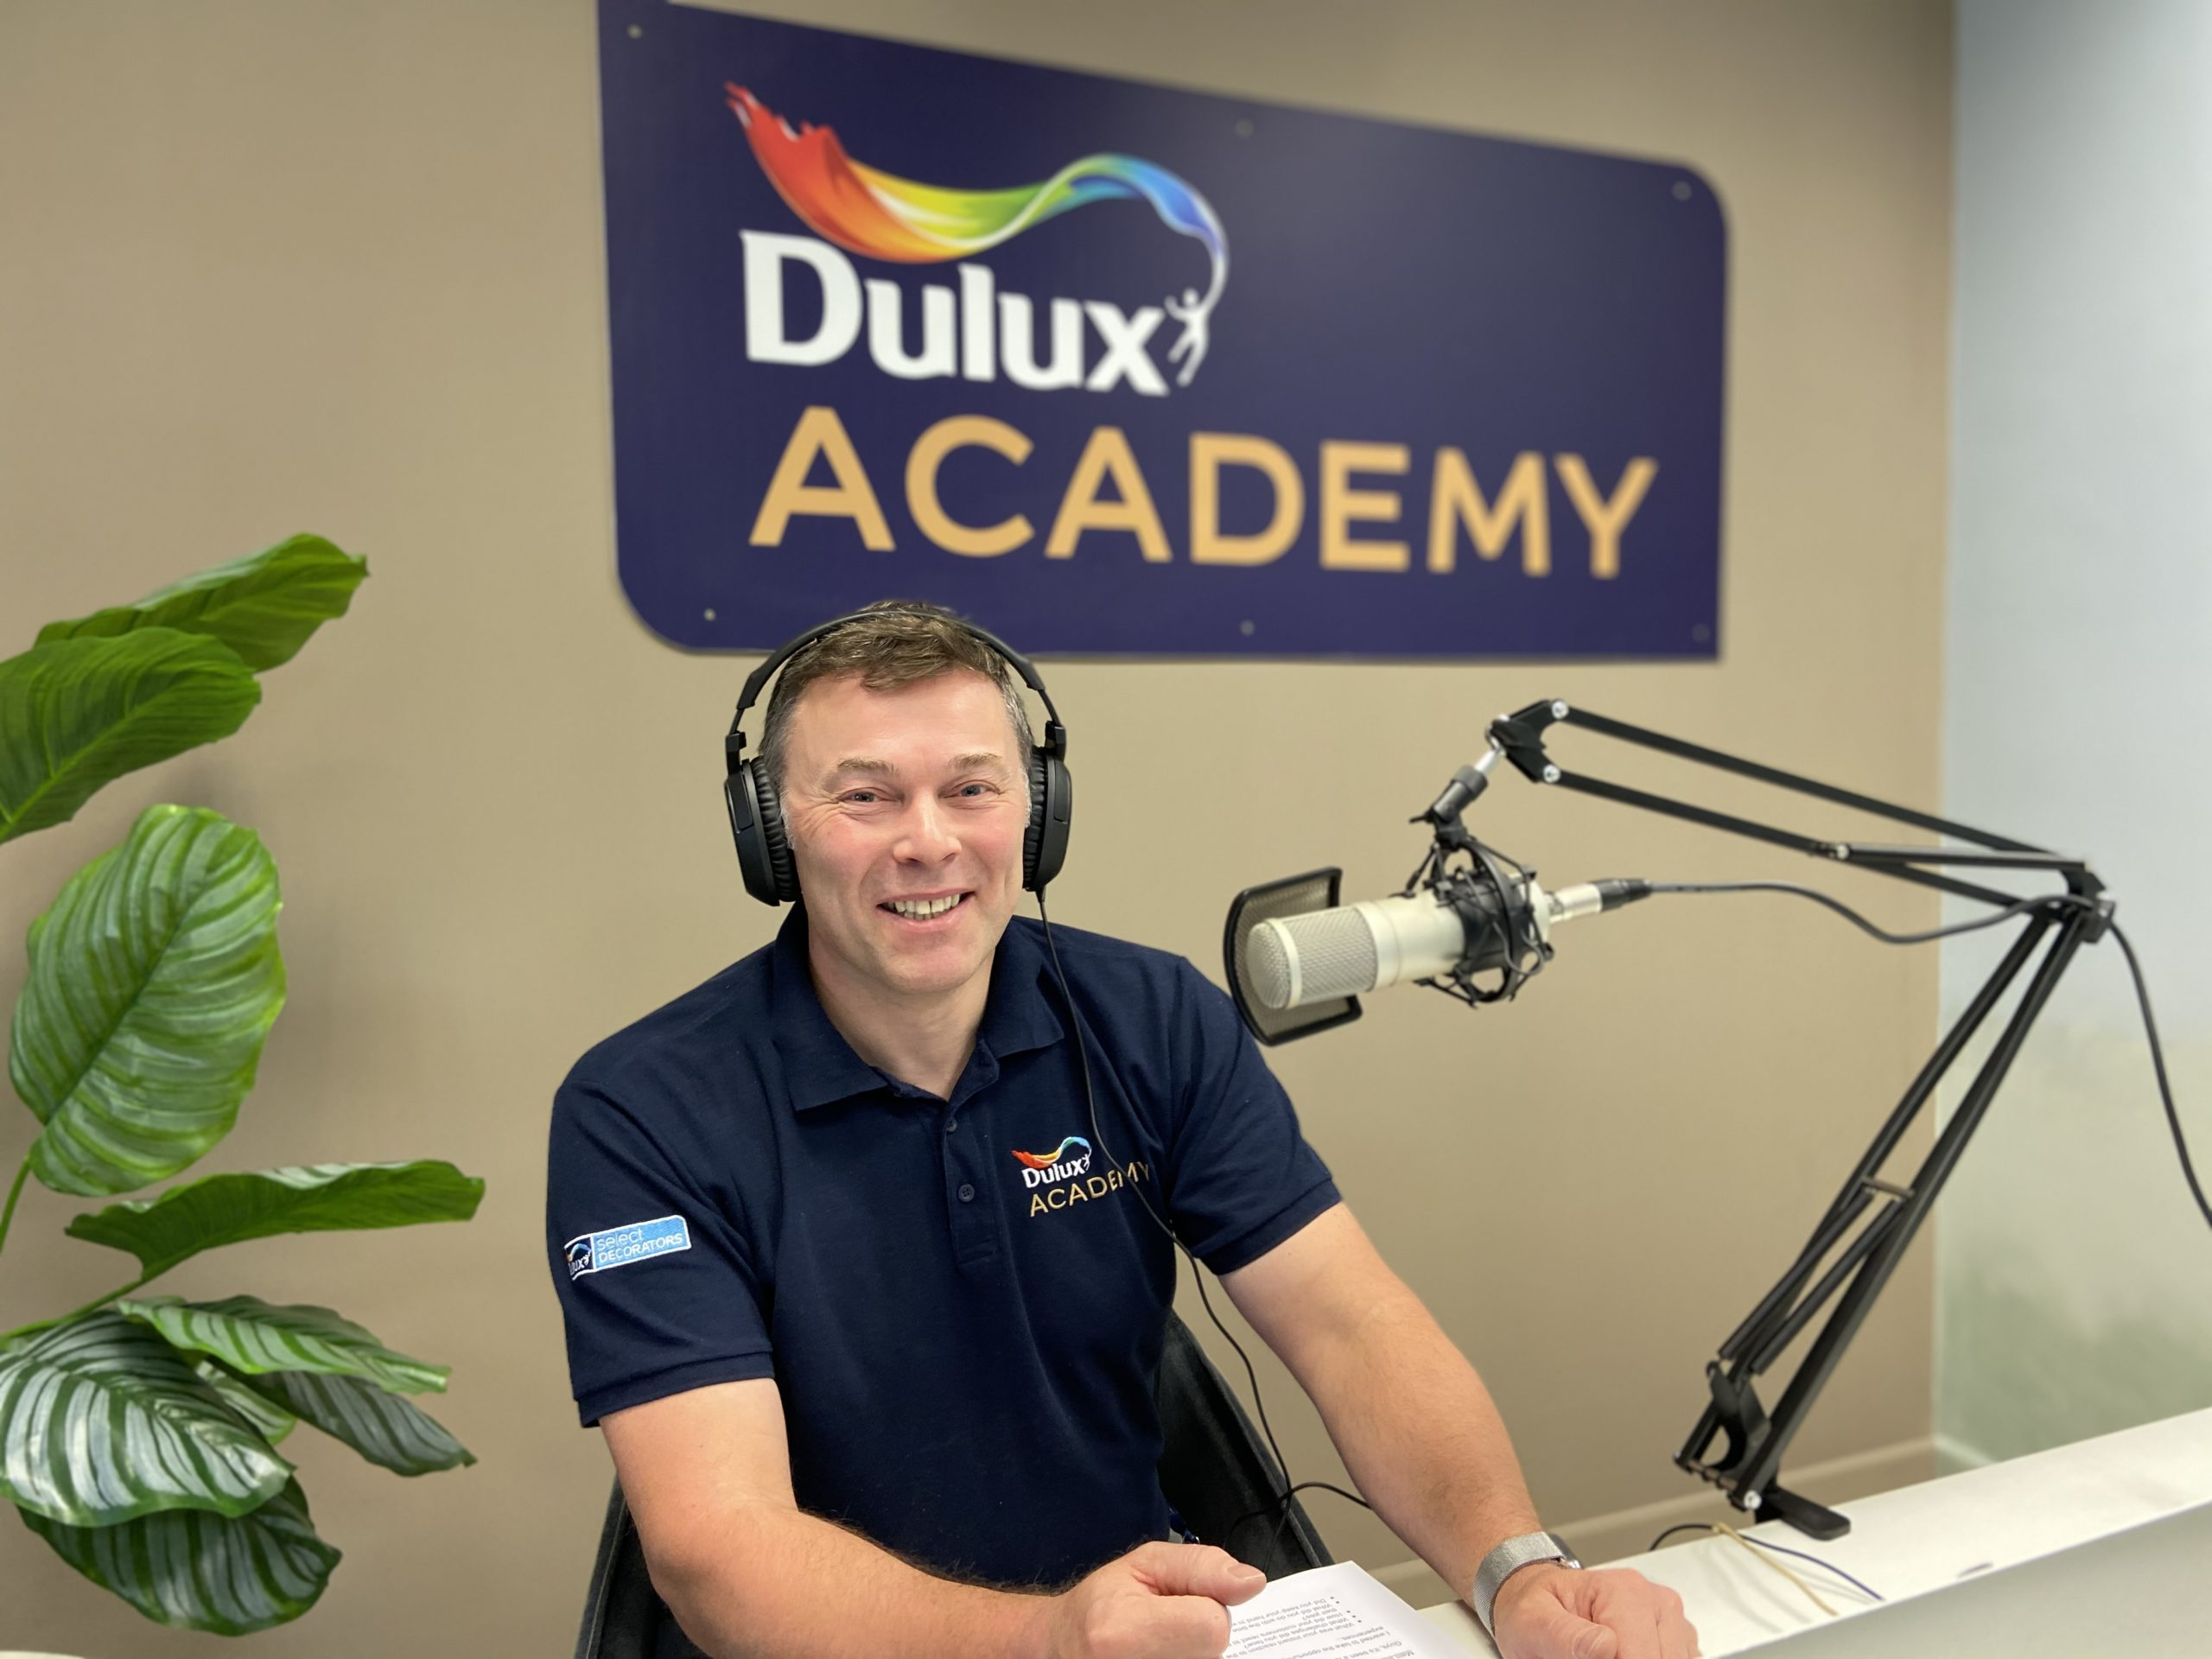 Decorators talk about life on new Dulux Academy Podcast